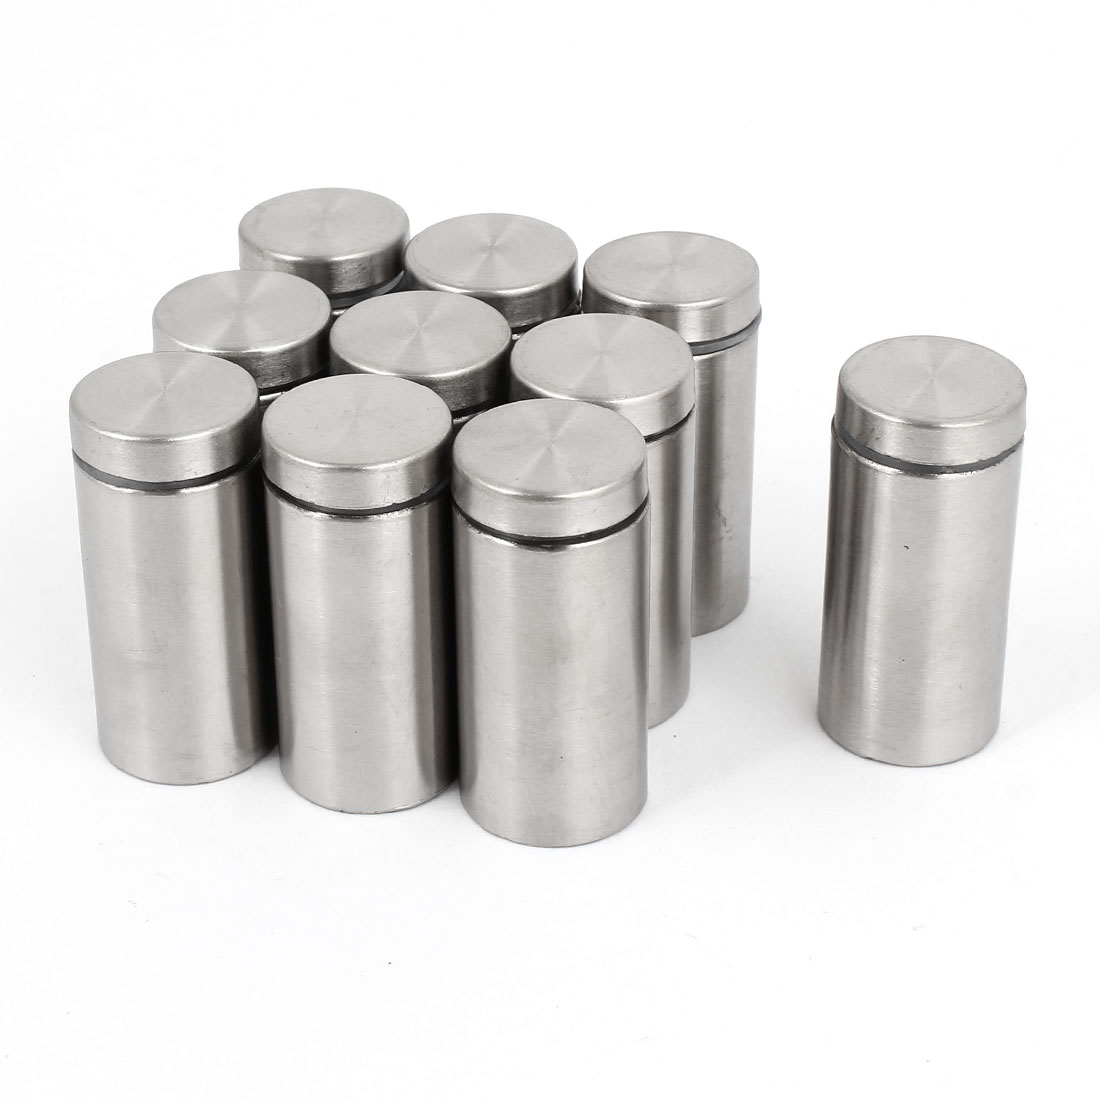 10pcs Silver Tone Stainless Steel Advertising Nail Class Standoff 19mmx40mm